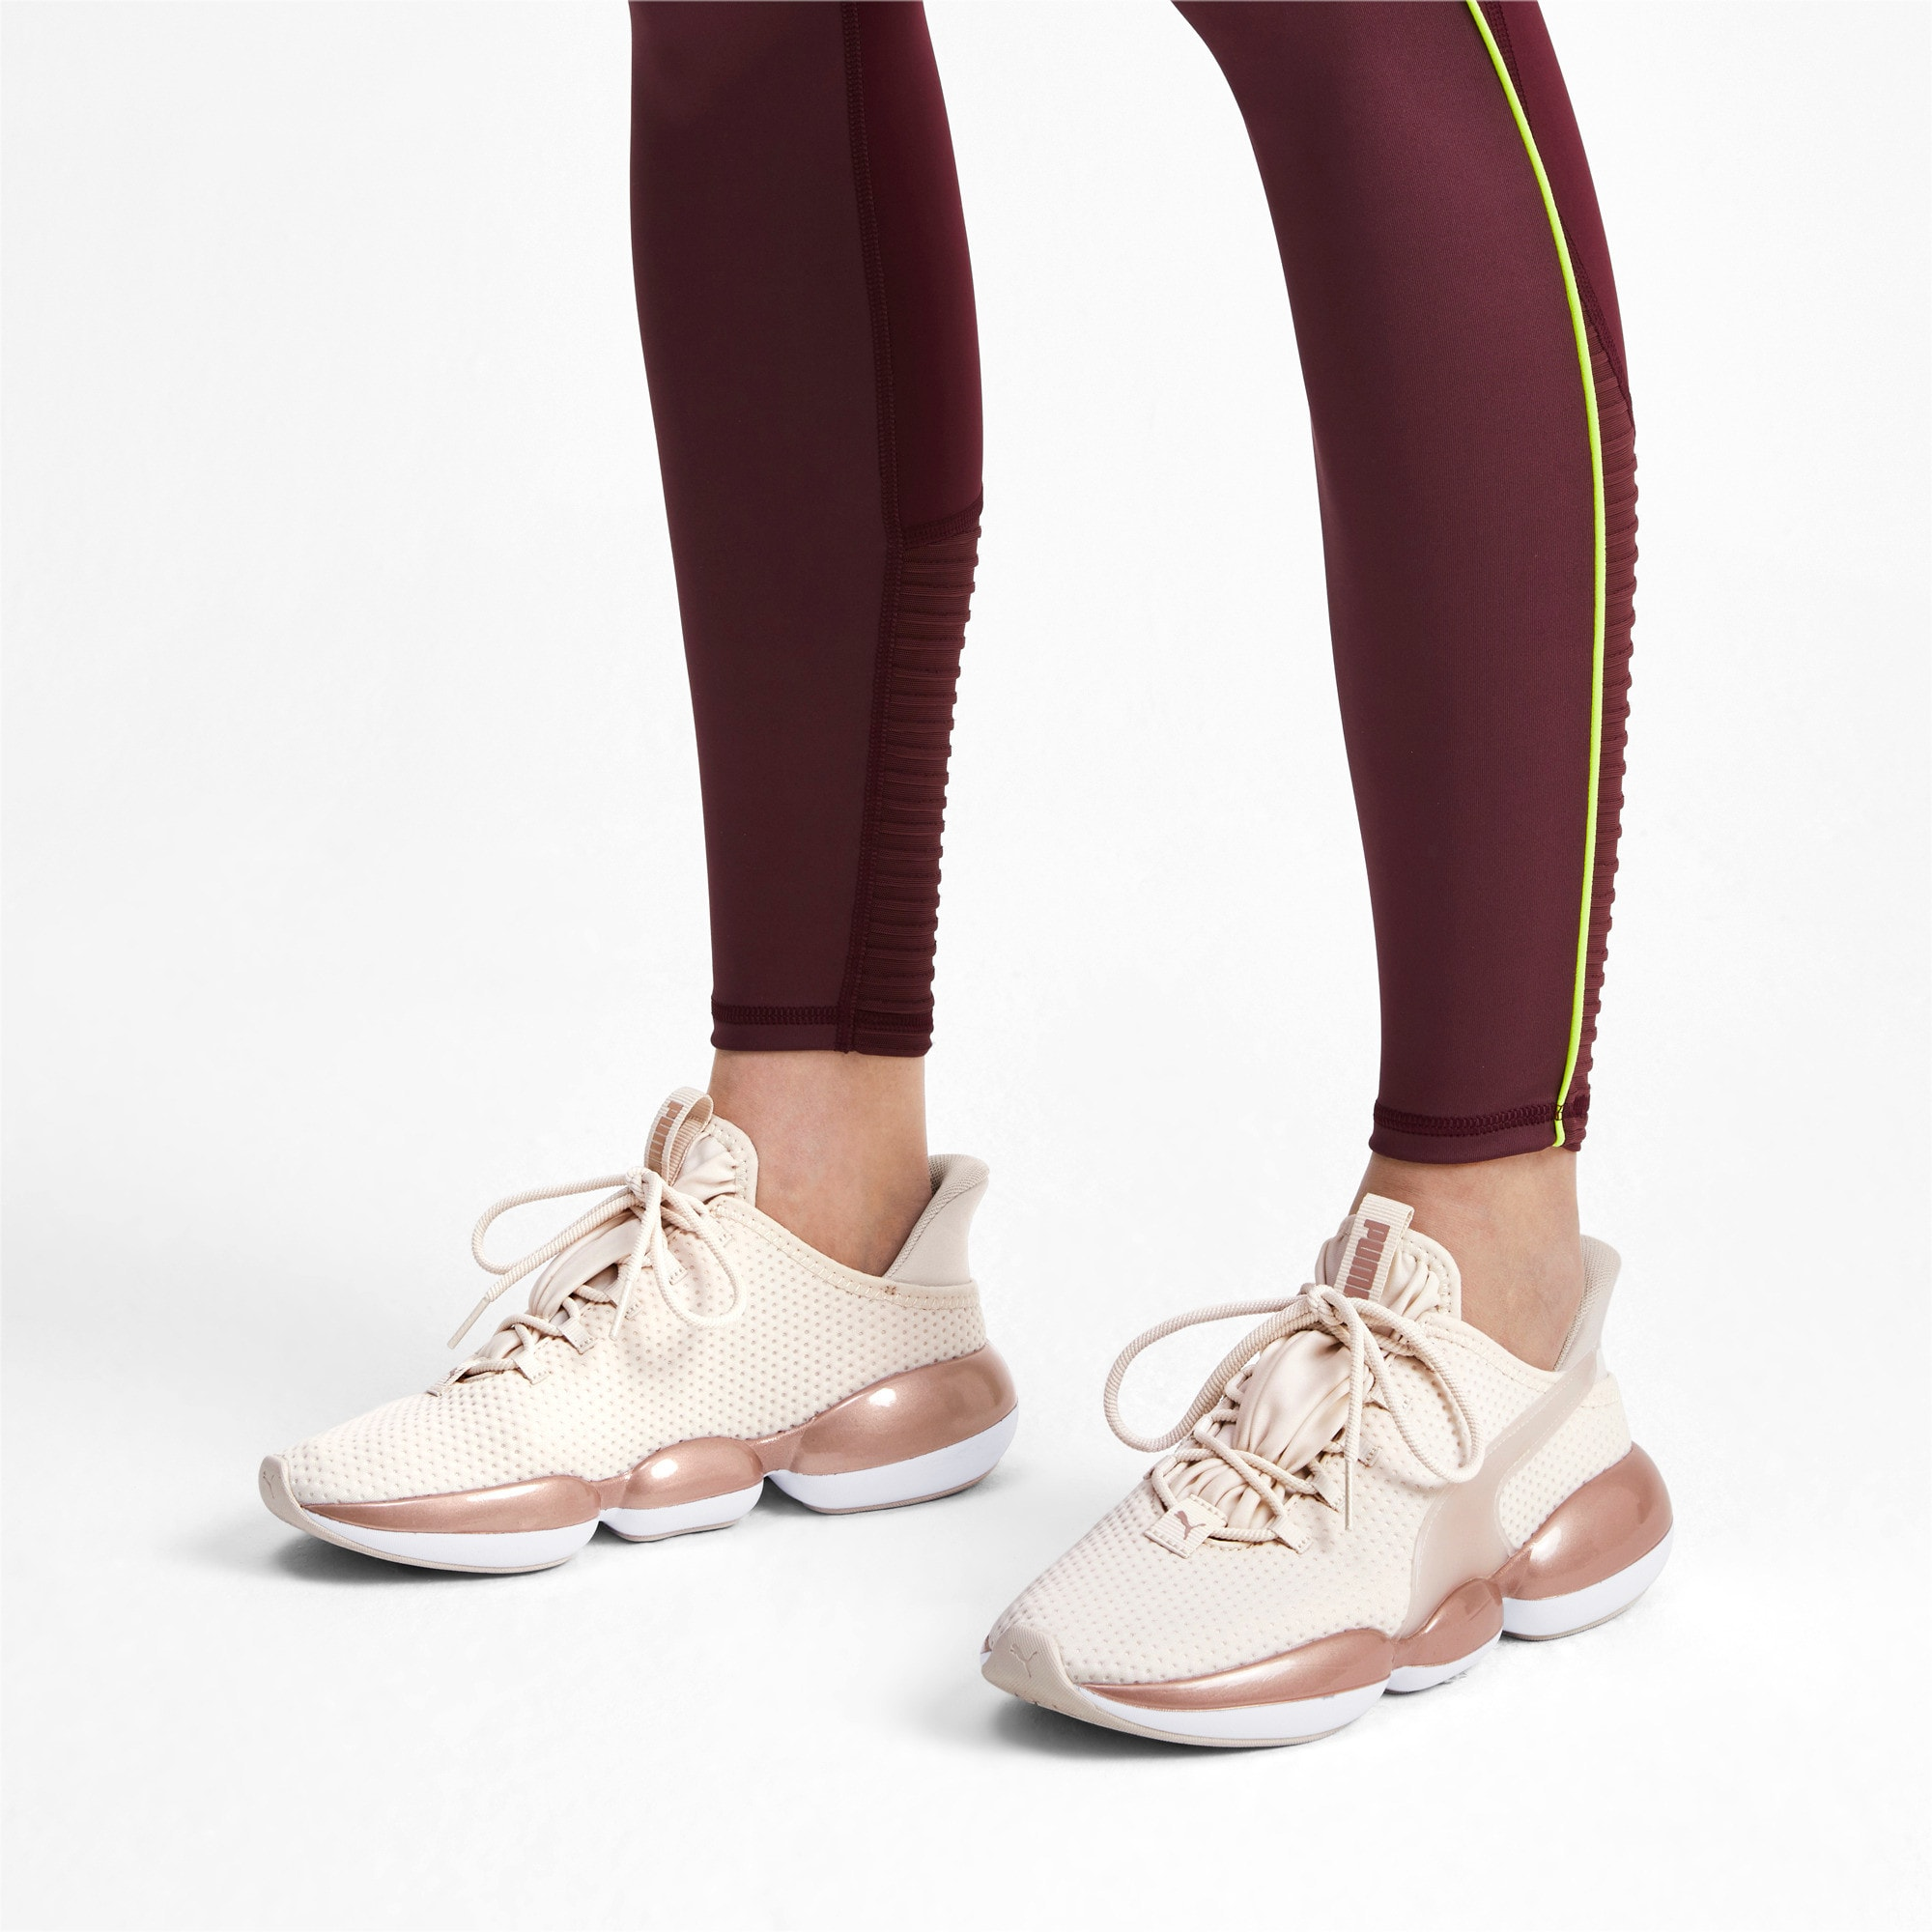 Thumbnail 2 of Mode XT Women's Training Trainers, Pastel Parchment-Rose Gold, medium